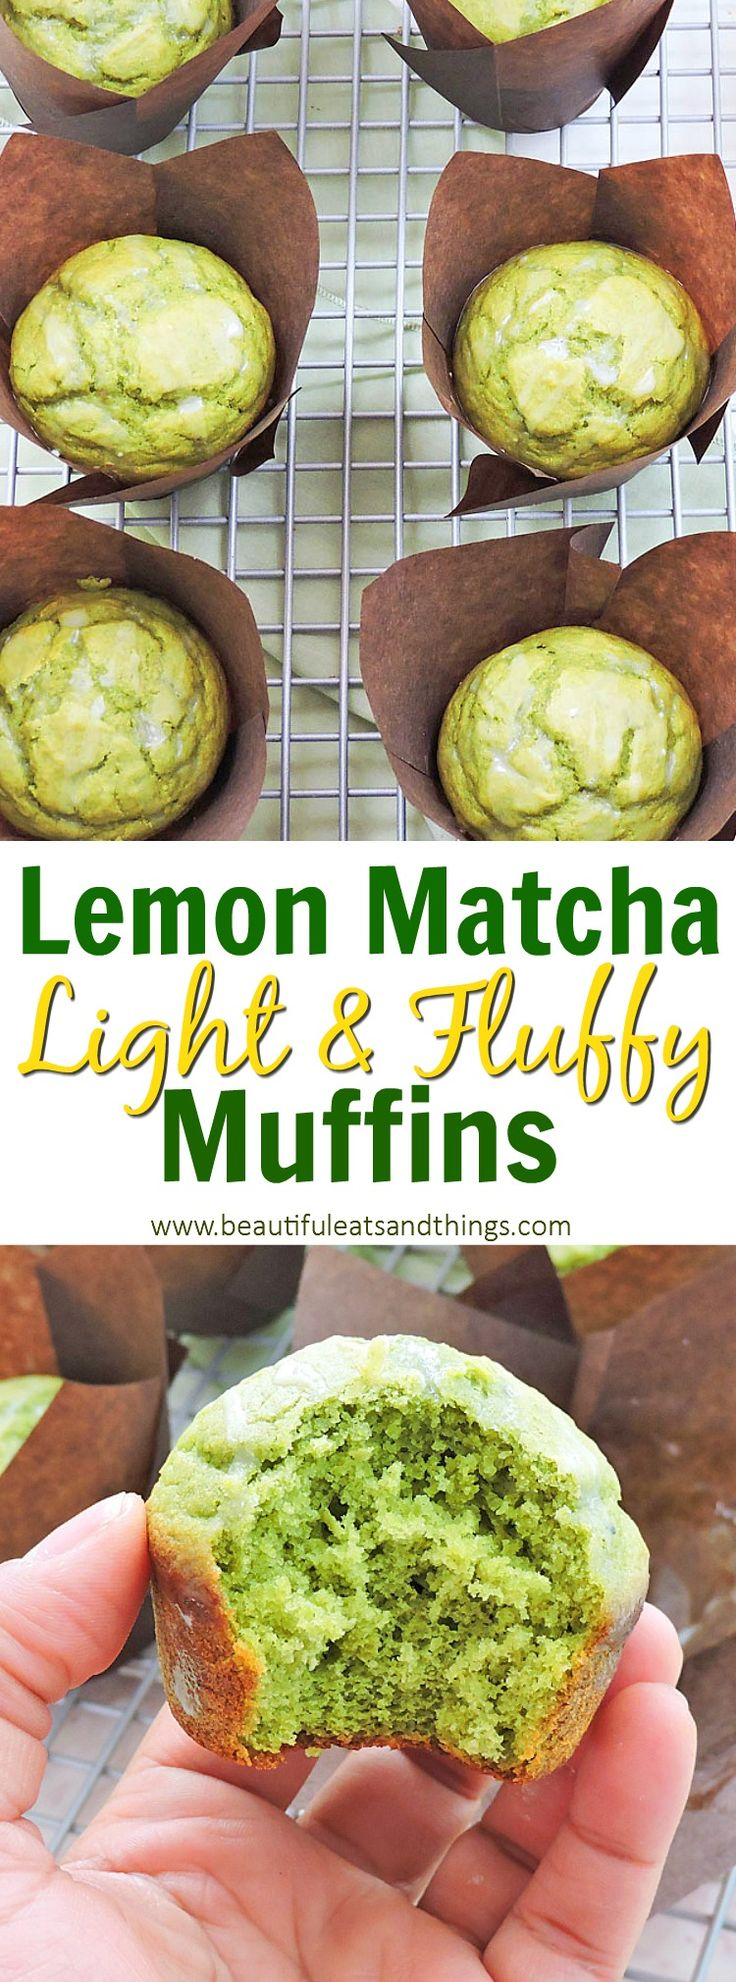 ONLY 141 calories!! Light & Fluffy Matcha Lemon Muffins are the best muffins you'll ever make!!  matcha recipes | lemon matcha muffins | matcha green tea recipes | healthy muffin recipes | low calorie muffin recipes | healthy dessert ideas | healthy breakfast ideas | lemon matcha muffins | St. Patrick's Day recipes | green muffins | green muffin recipes